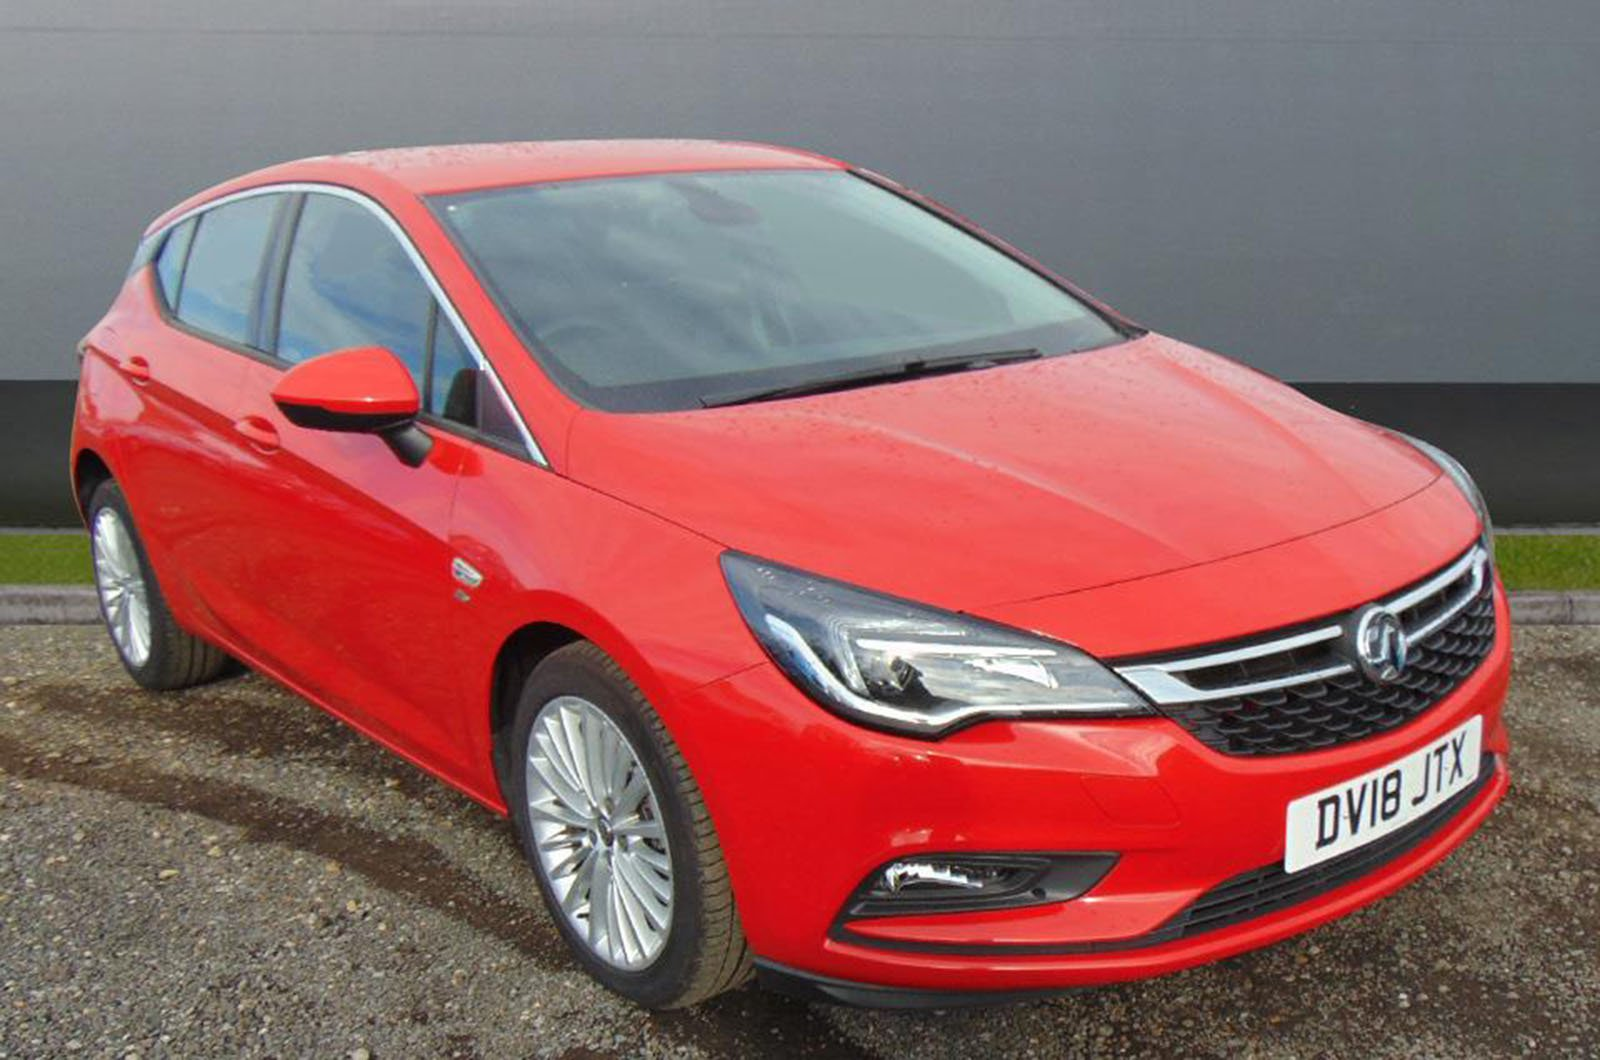 Used alternative to a Seat Leon: Vauxhall Astra